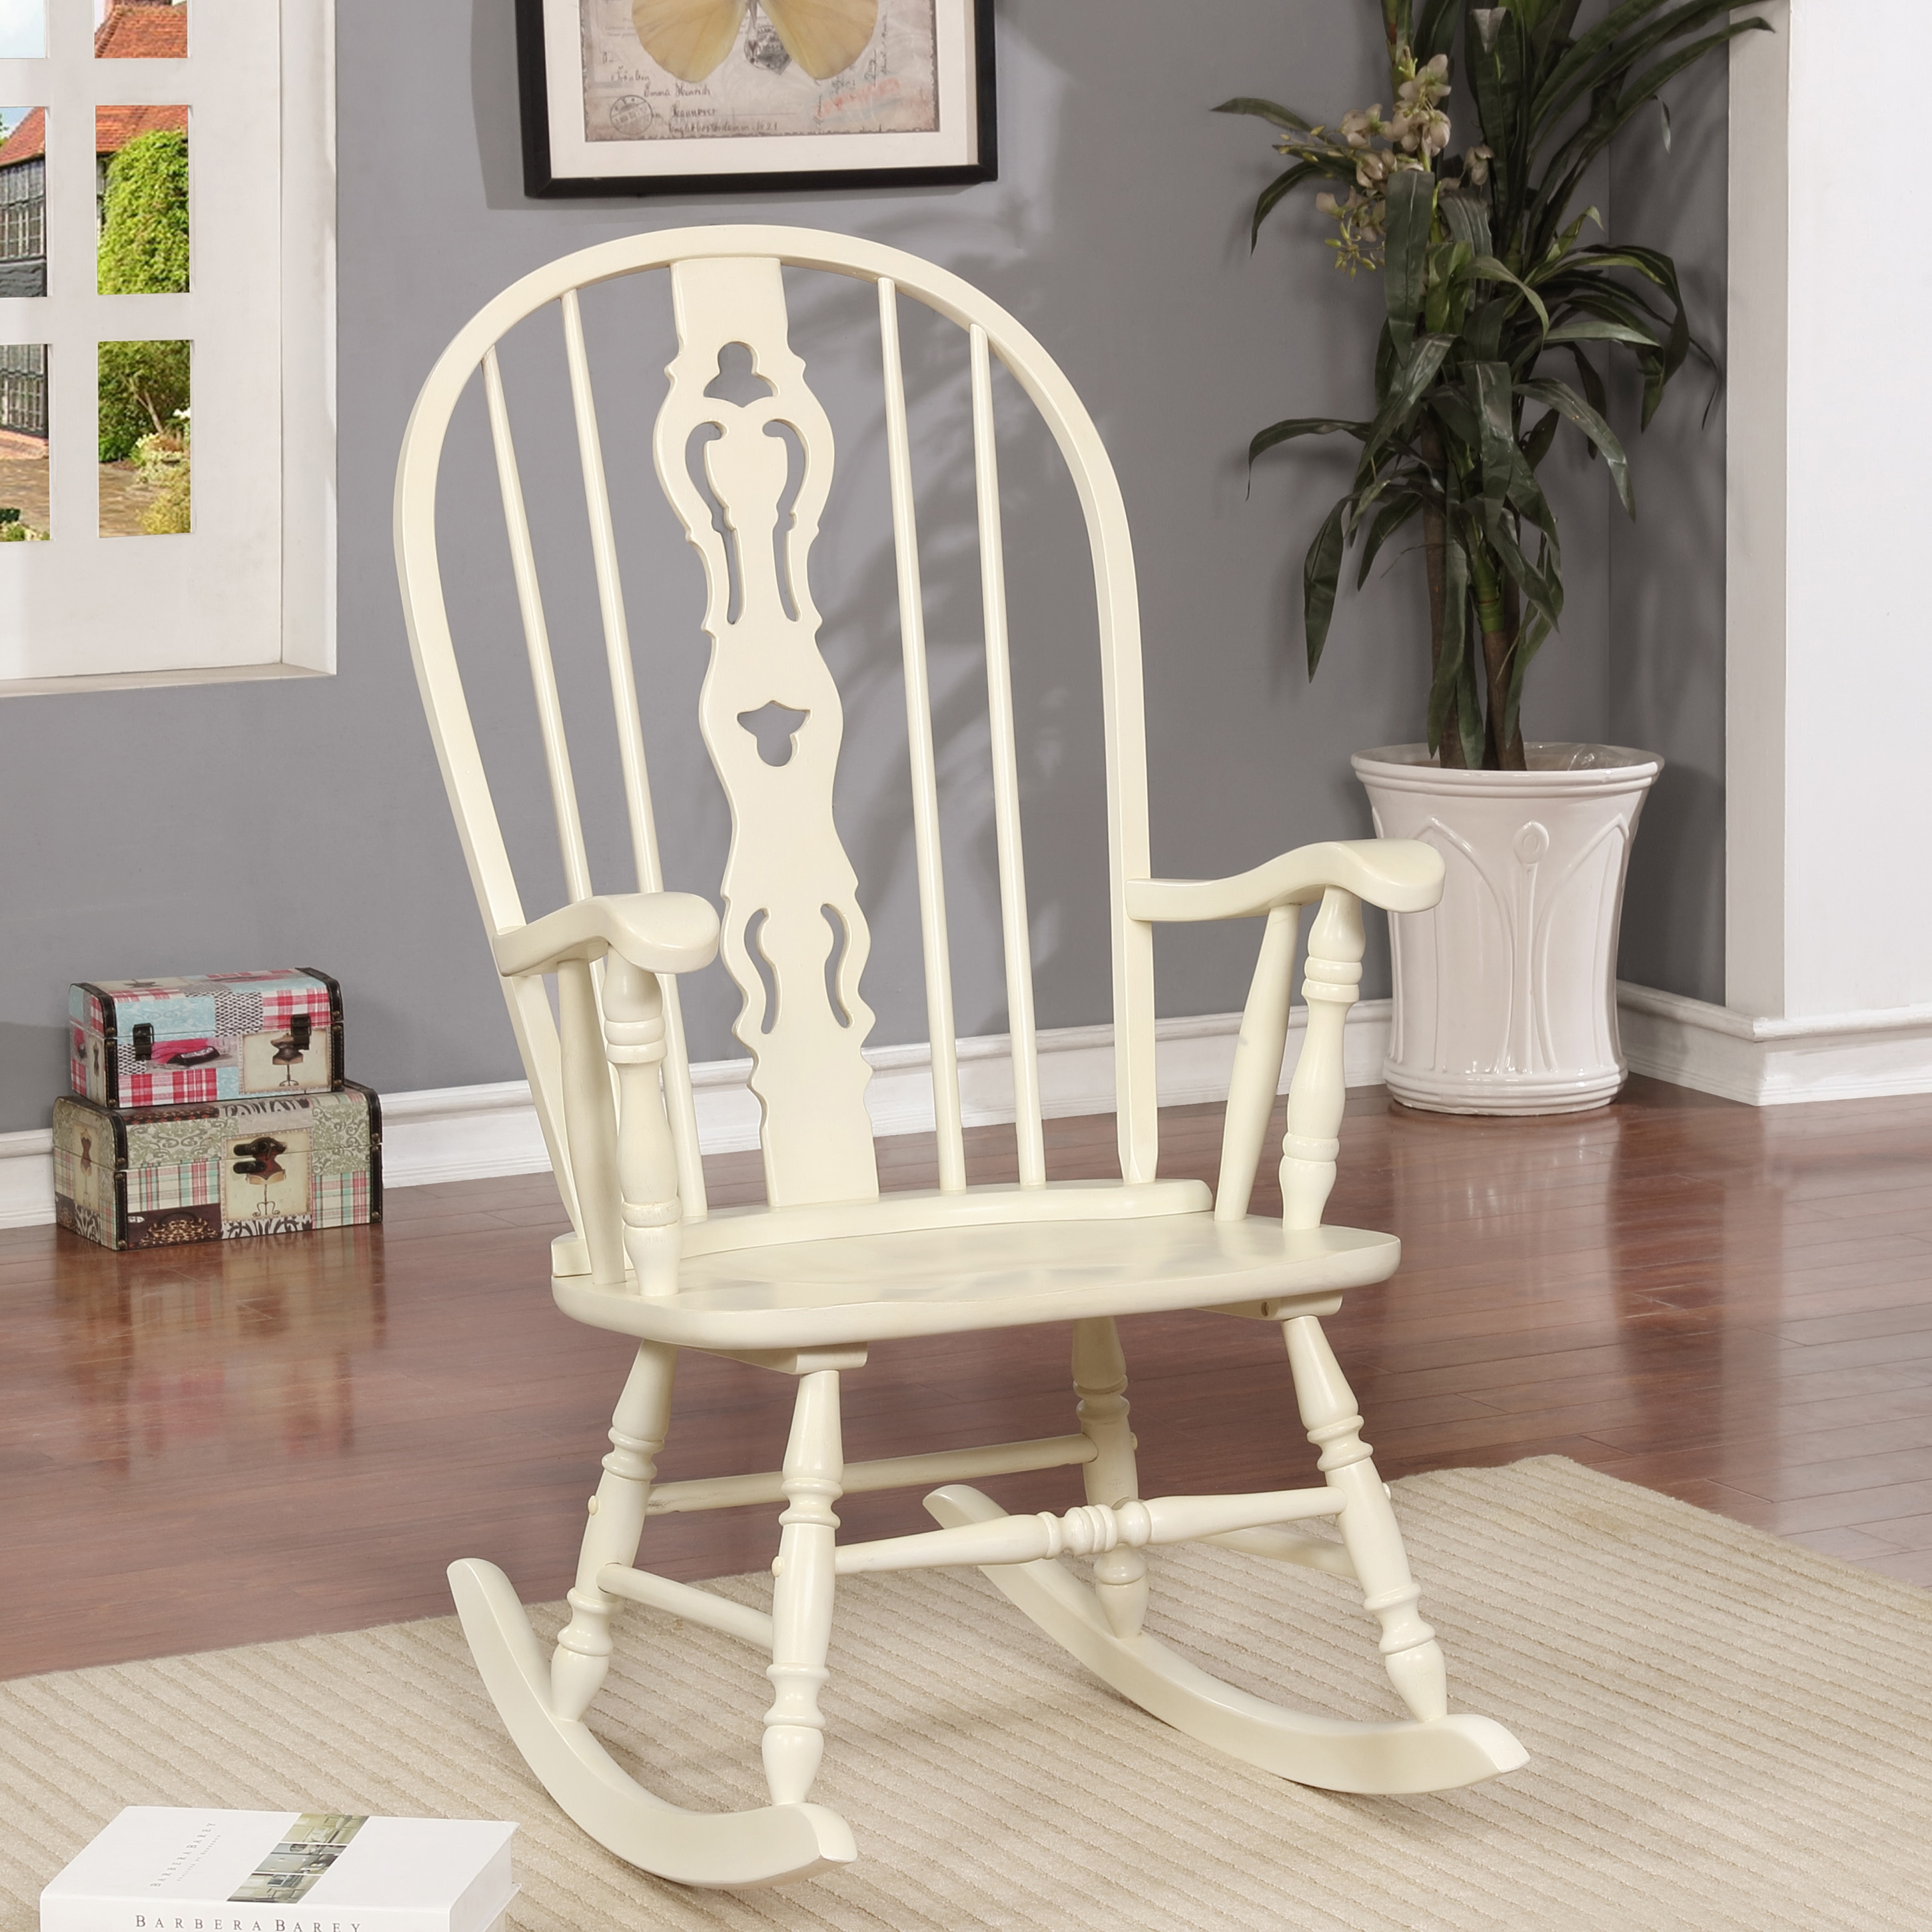 Shop Furniture Of America Ethel Traditional Country Rocking Chair   Free  Shipping Today   Overstock.com   20609422